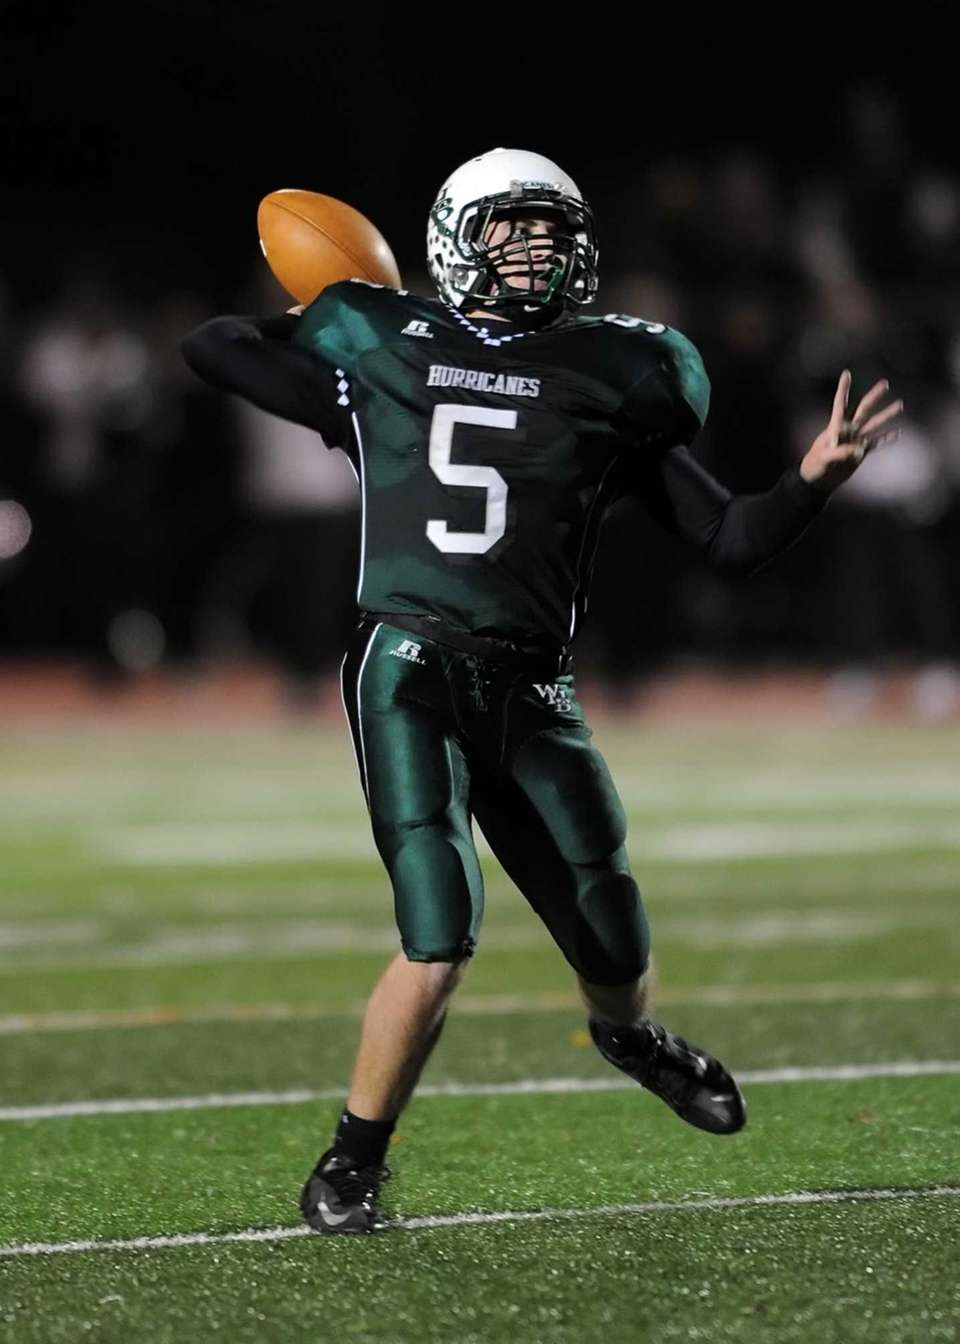 Westhampton's Jack Murphy looks to the end zone